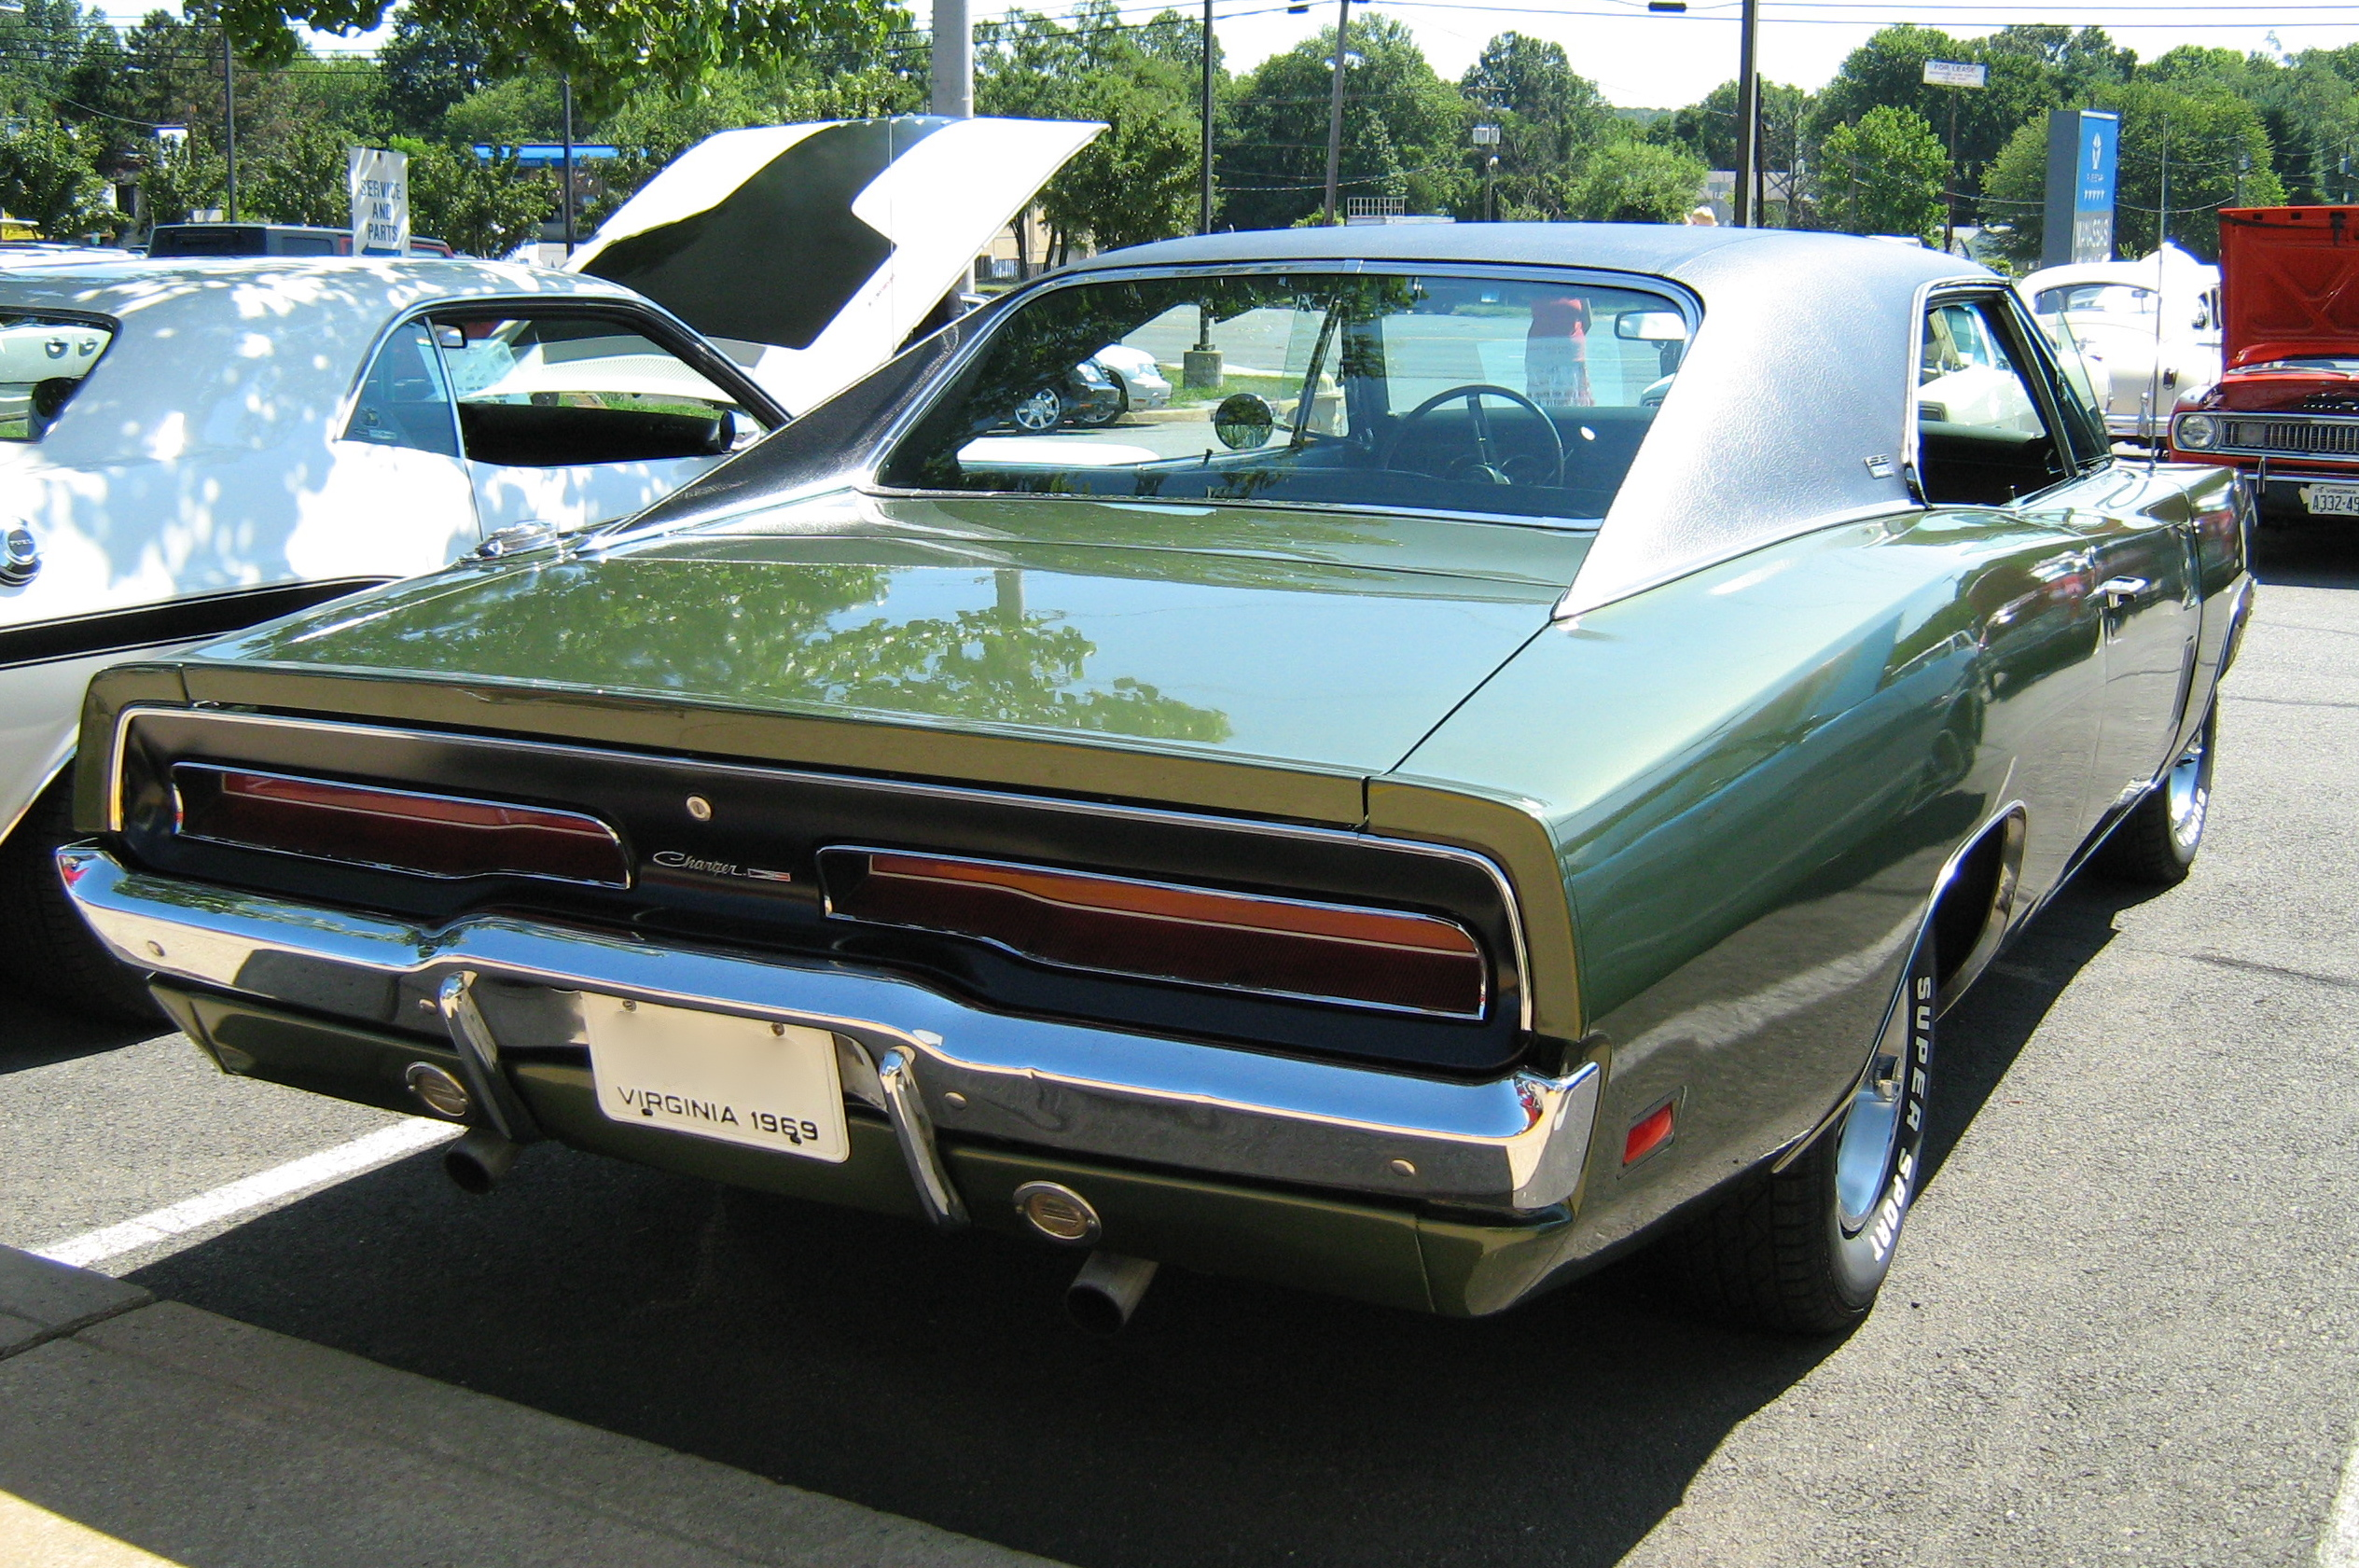 [Image: 1969_Dodge_Charger_green_R.jpg]